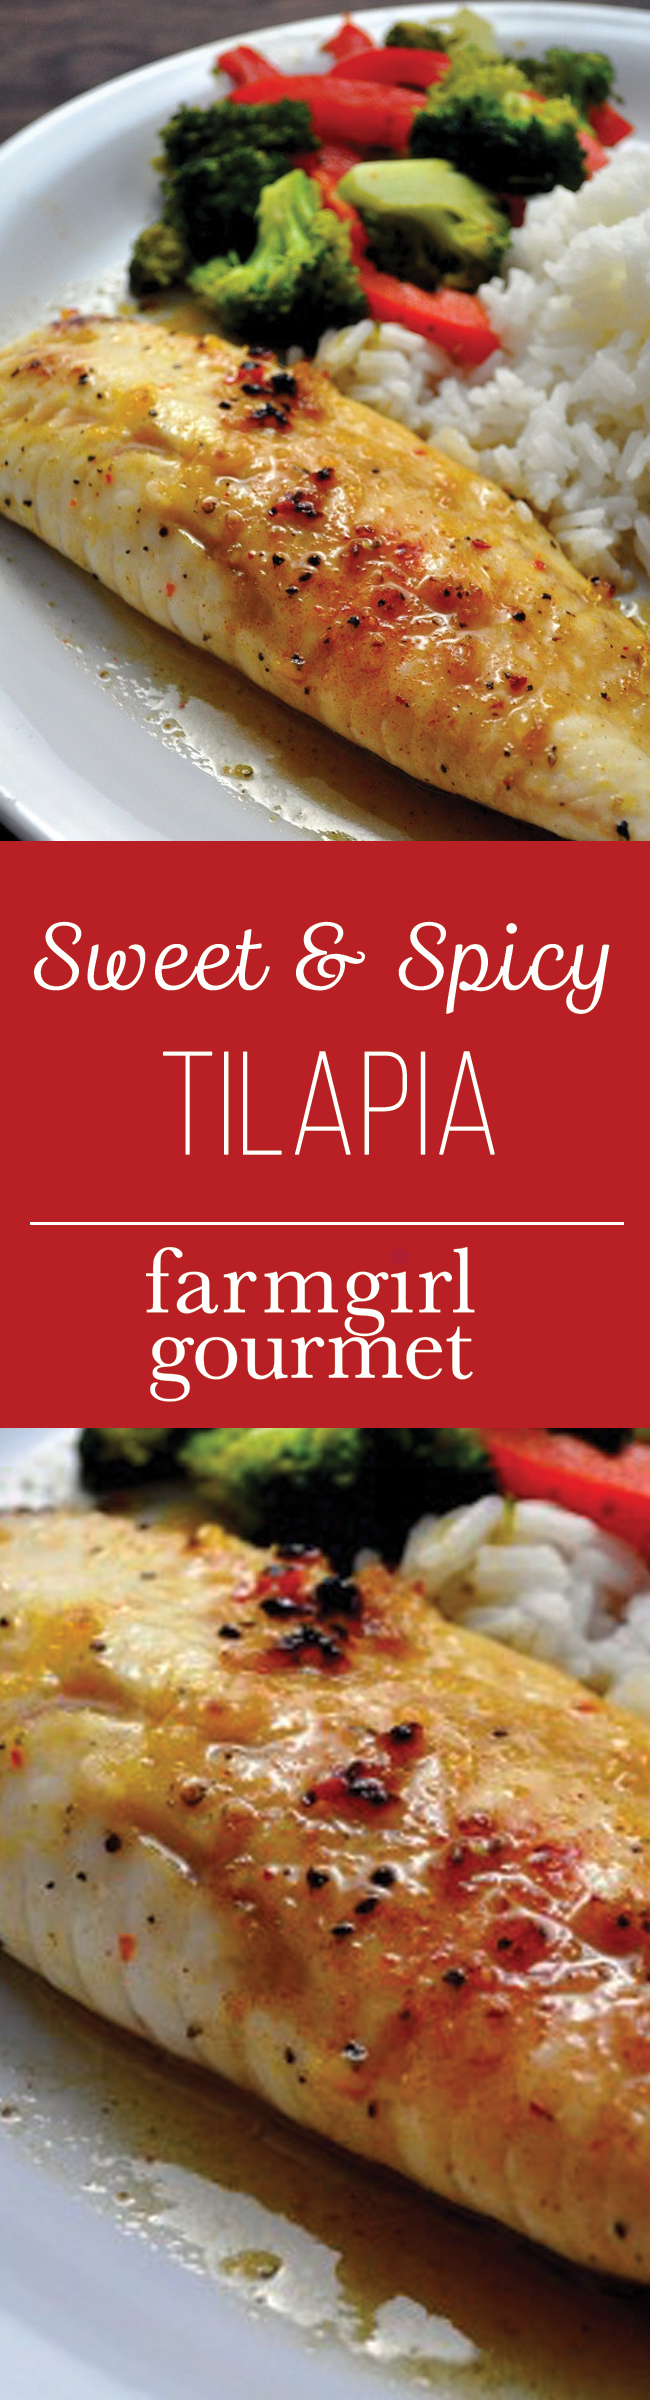 Sweet and Spicy Tilapia Recipe | farmgirlgourmet.com